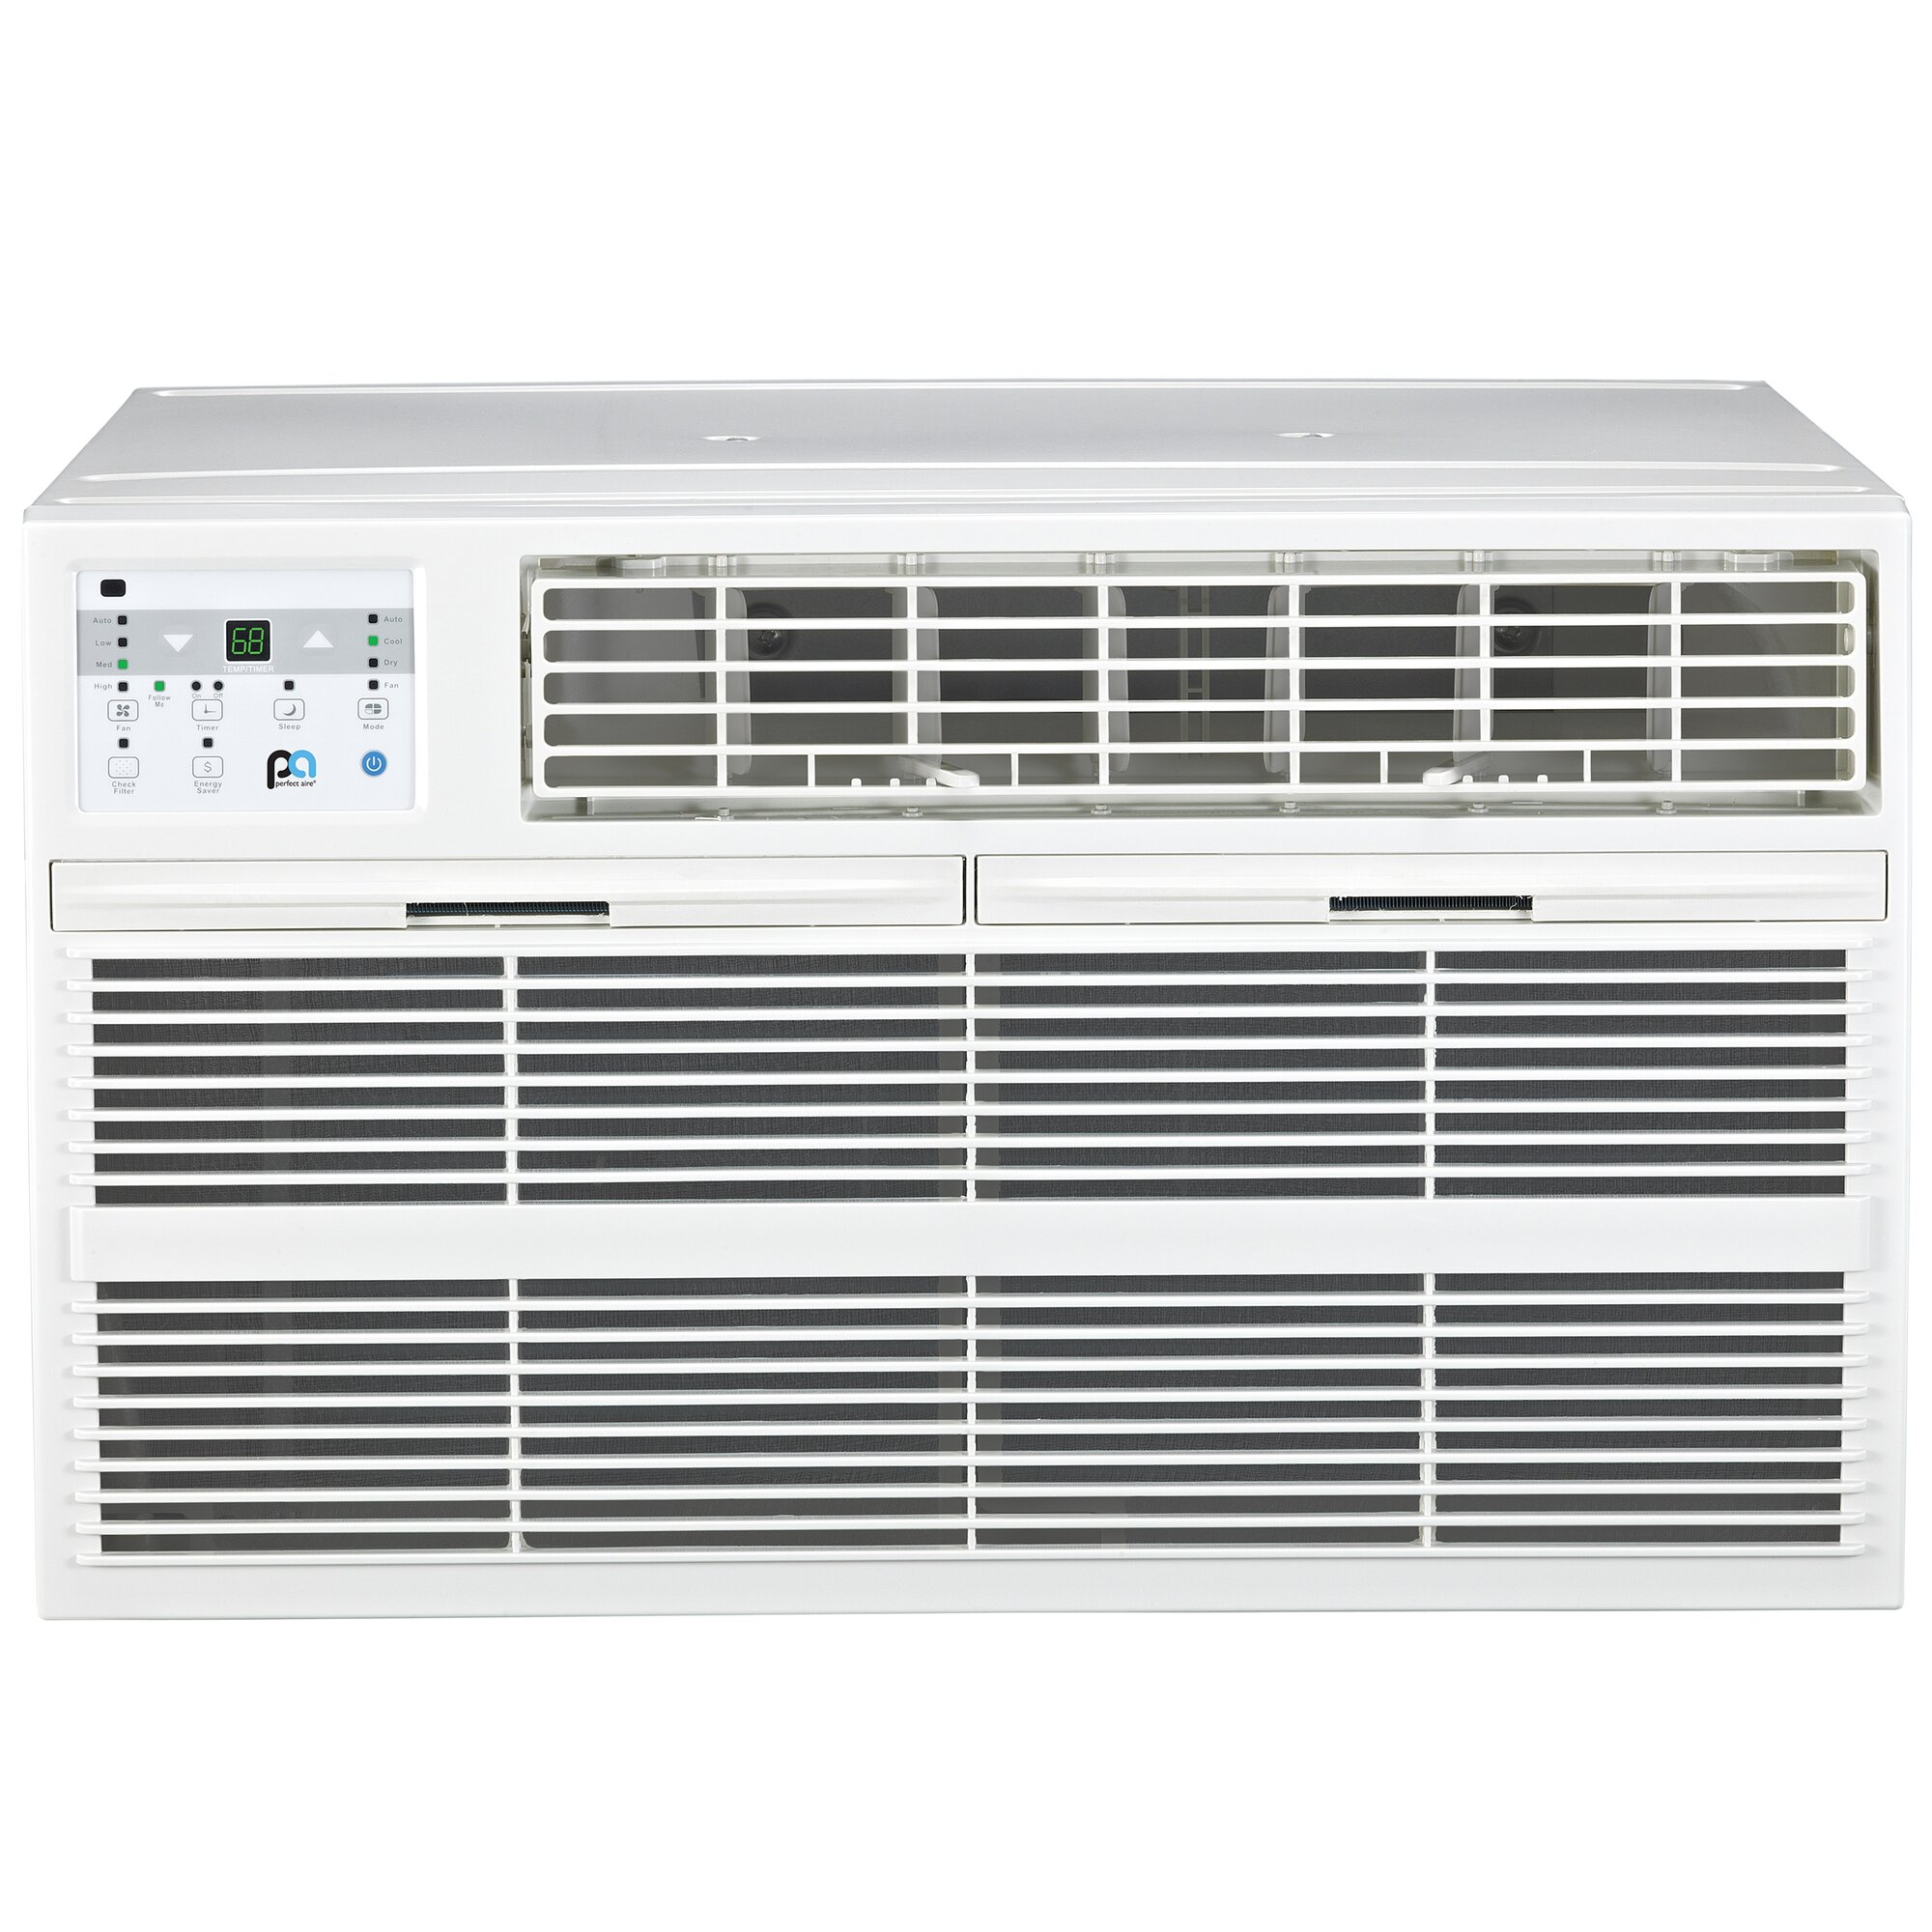 #5A6A71 PerfectAire 14 000 BTU Through The Wall Air Conditioner  Brand New 9861 14000 Btu Wall Air Conditioner images with 2000x2000 px on helpvideos.info - Air Conditioners, Air Coolers and more